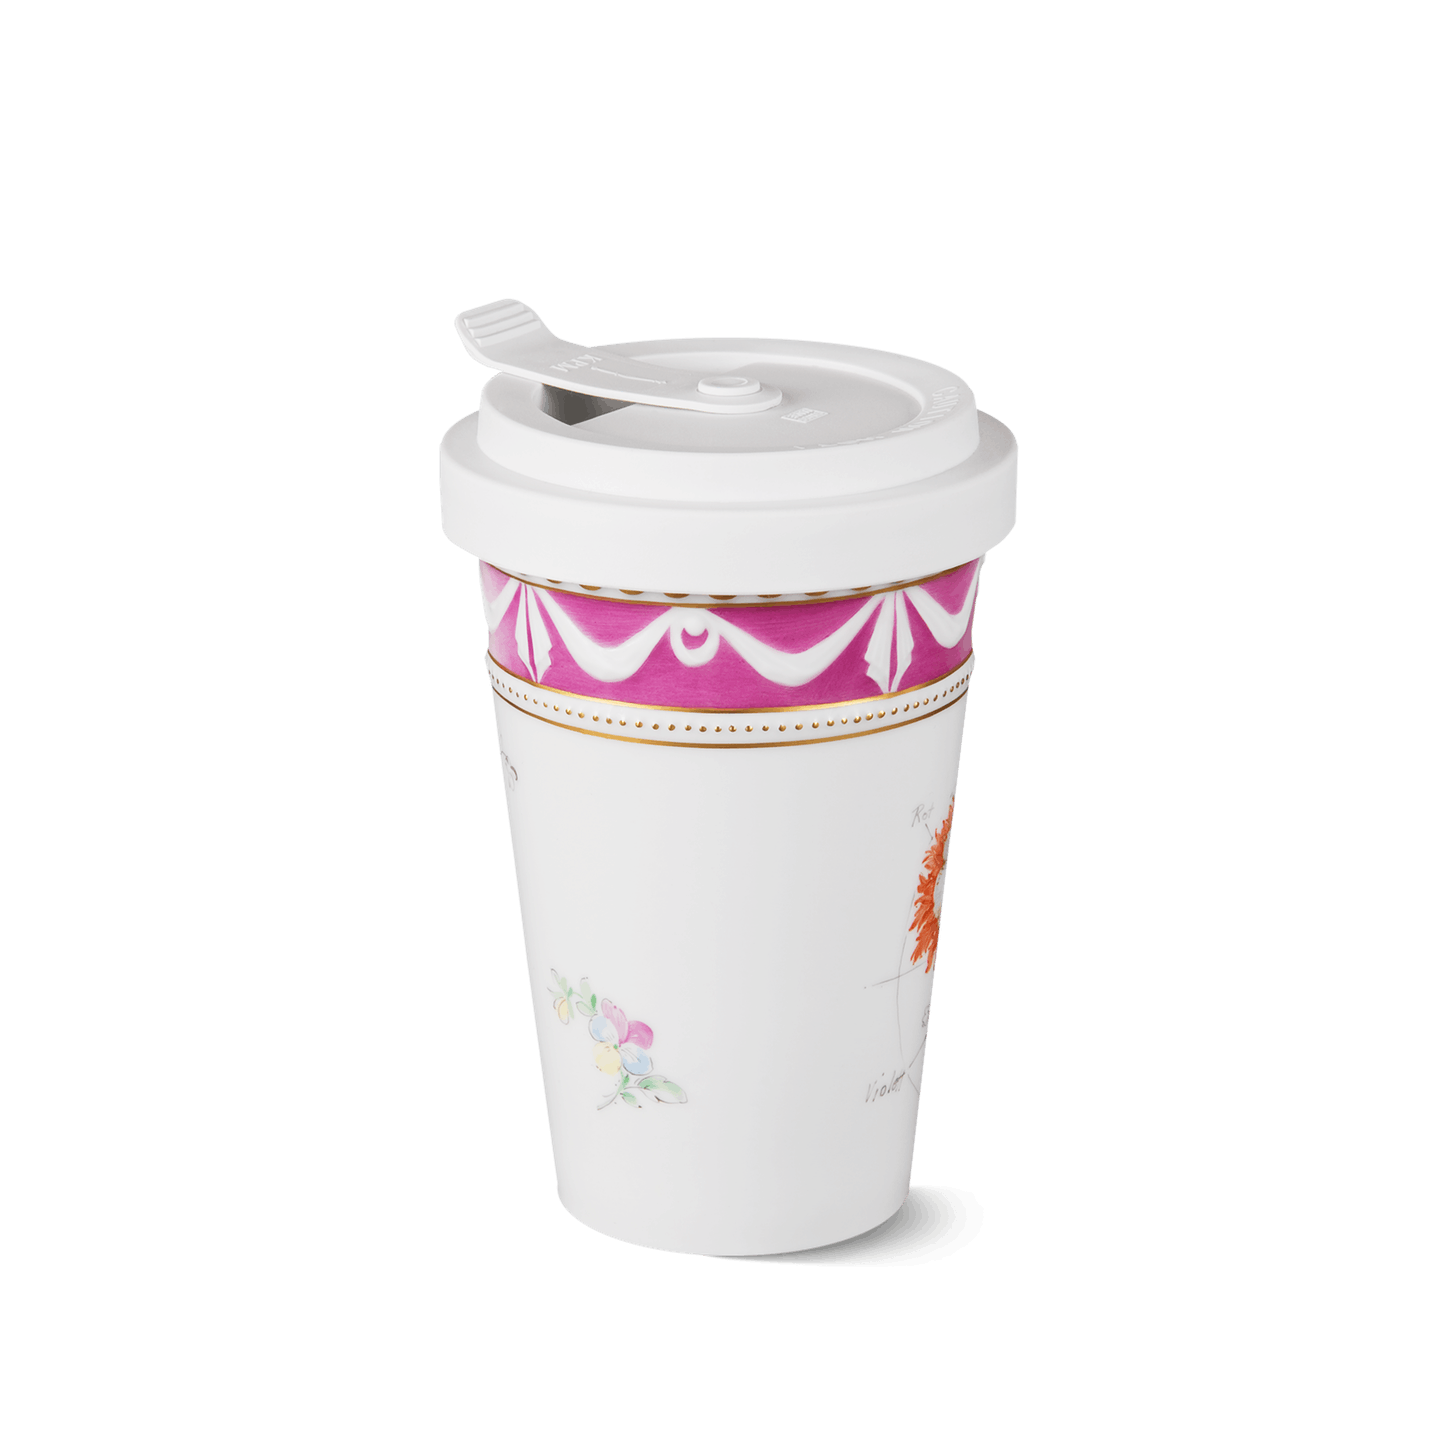 "To-go Becher, KURLAND, Heritage Edition ""Blume"""